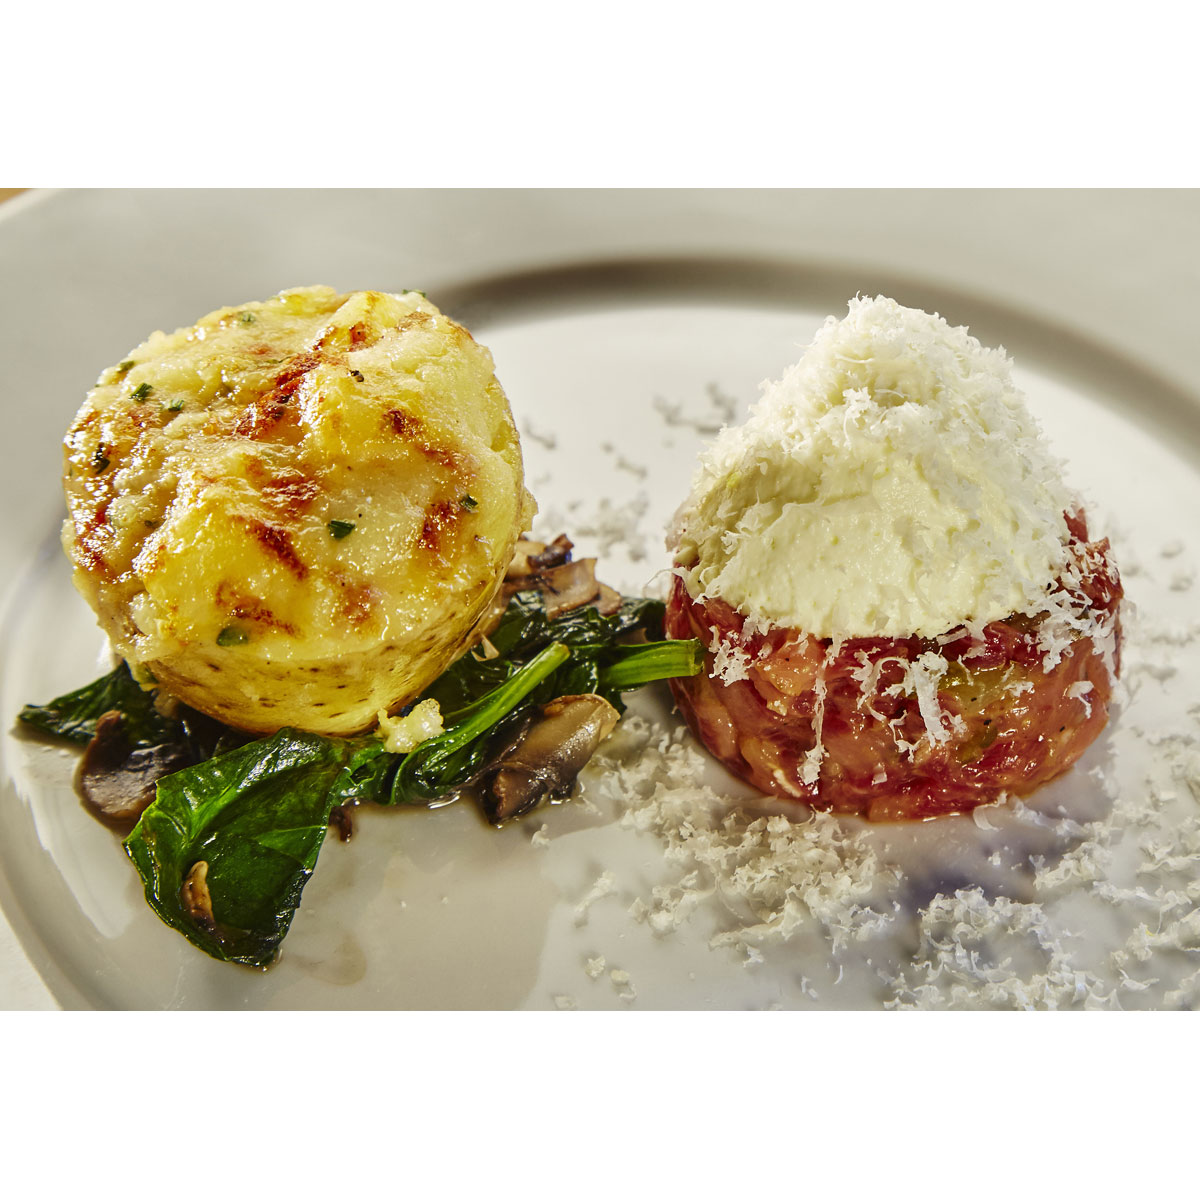 Stuffed potatoes with grappa, Grana Padano mousse, spinach and beef tartare